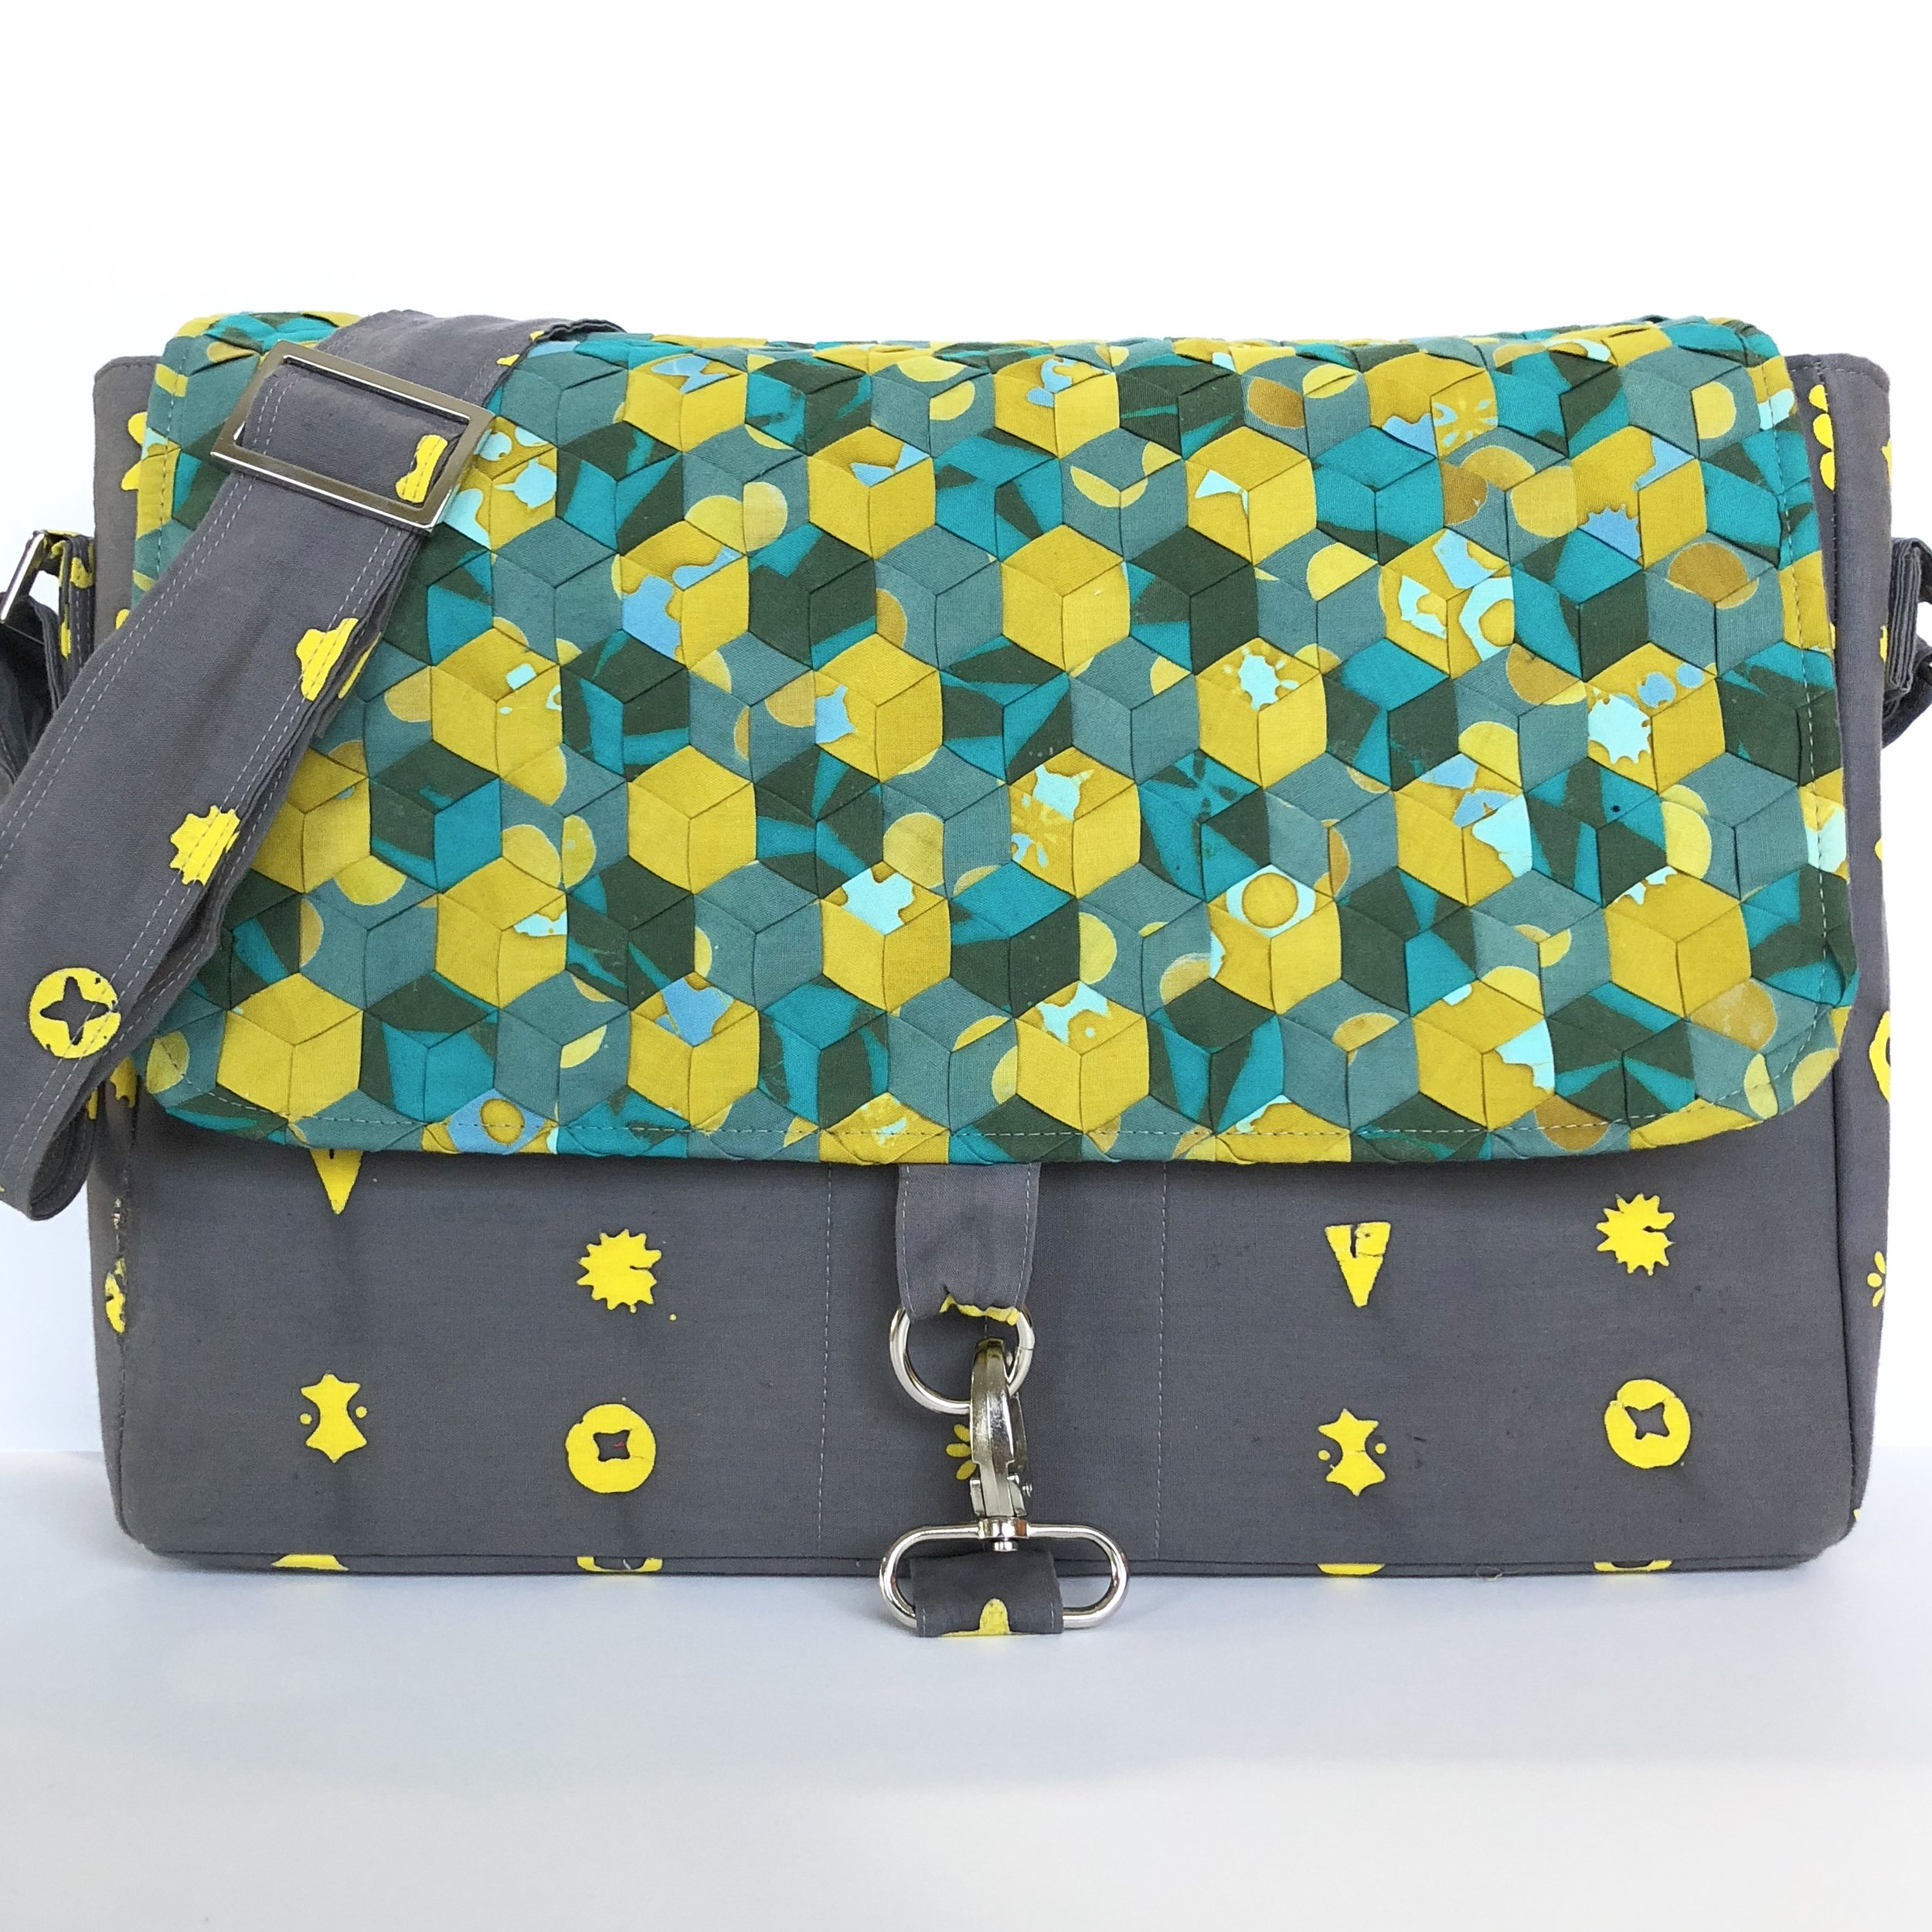 Tumbling Triplets panel by WEFTY made into the Marigold Messenger Bag.